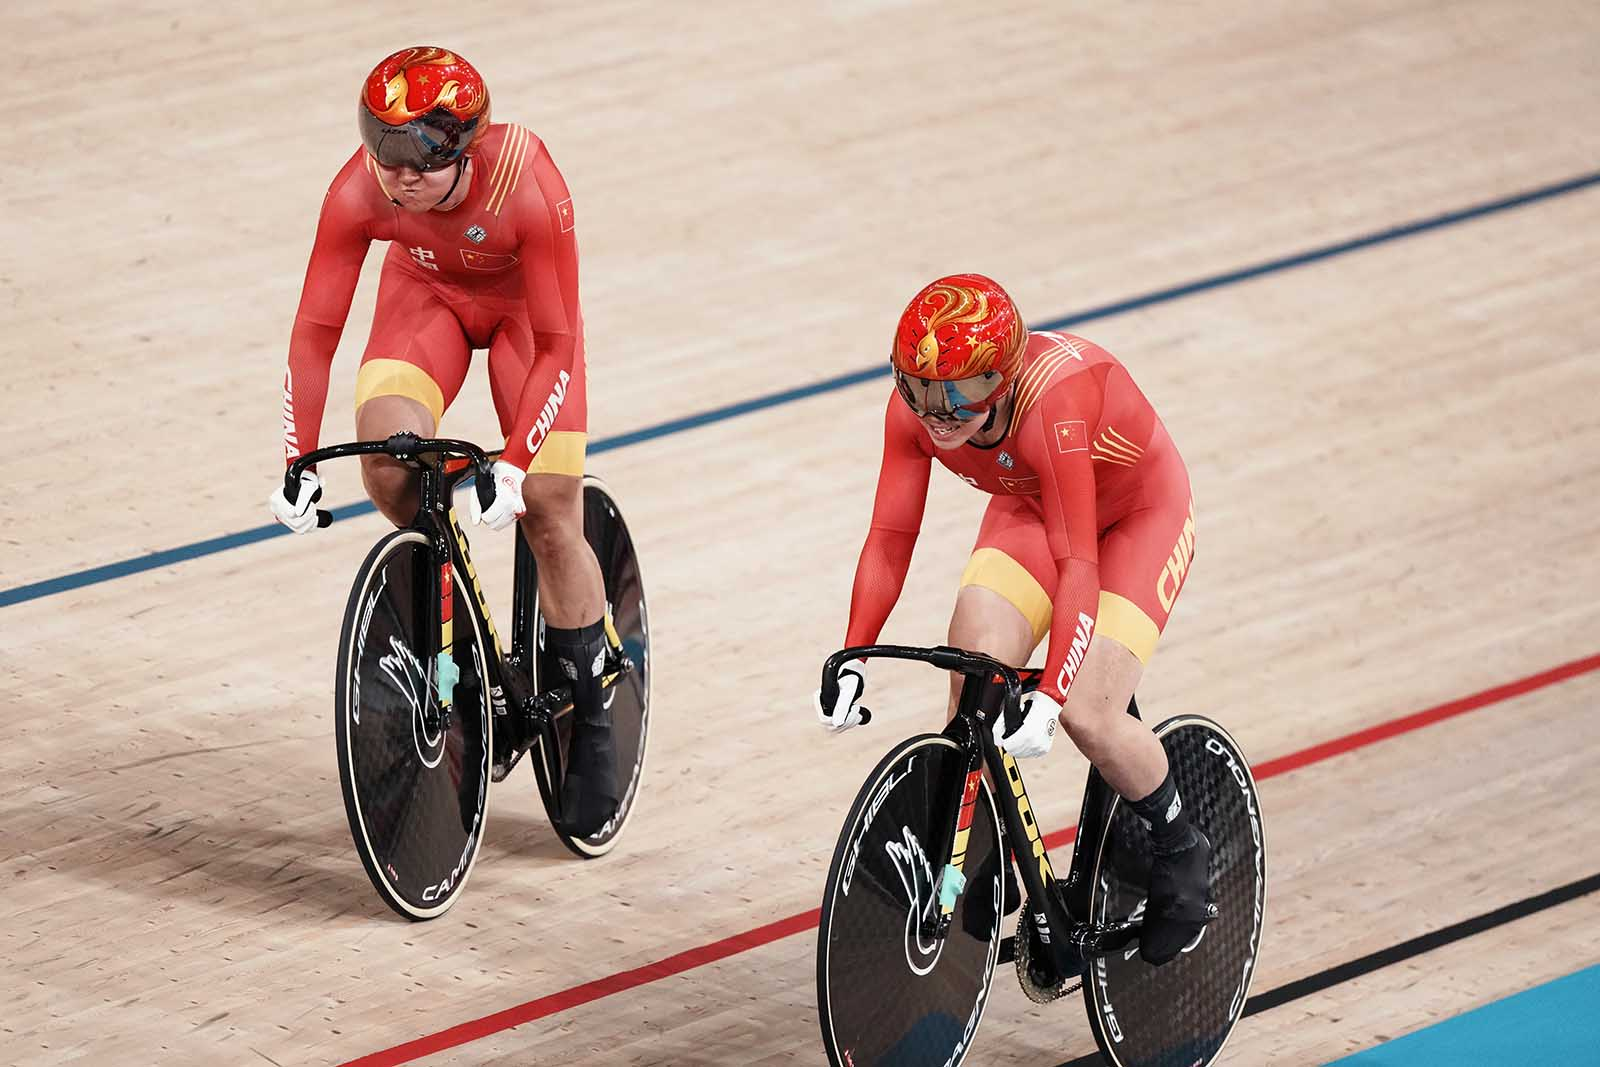 Zhong Tianshi and Bao Shanju of China compete during a qualifying heat for women's track cycling team sprint on Monday, August 2, in Izu, Japan.